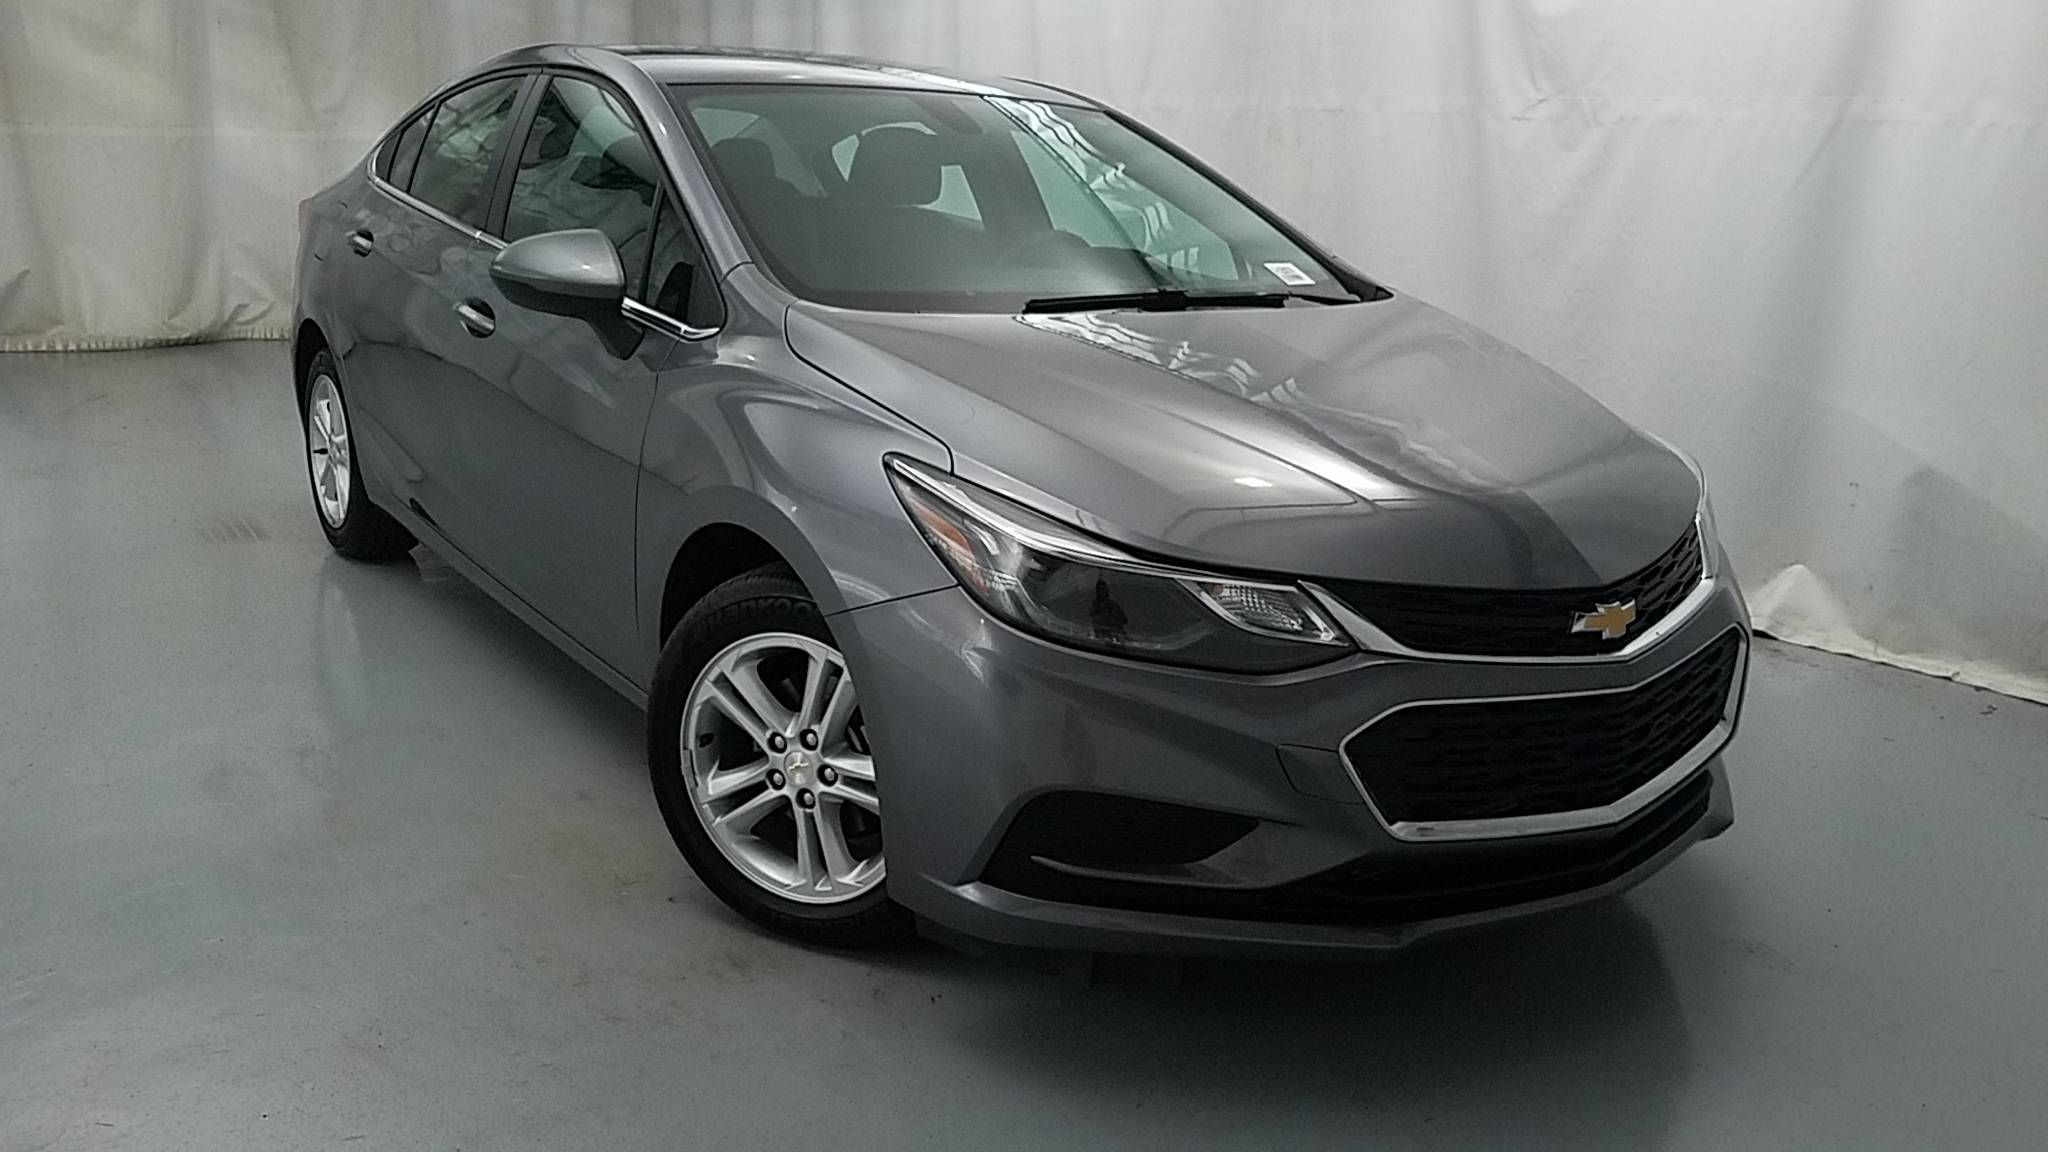 2018 Chevrolet Cruze Vehicles For Sale Near Hammond New Orleans